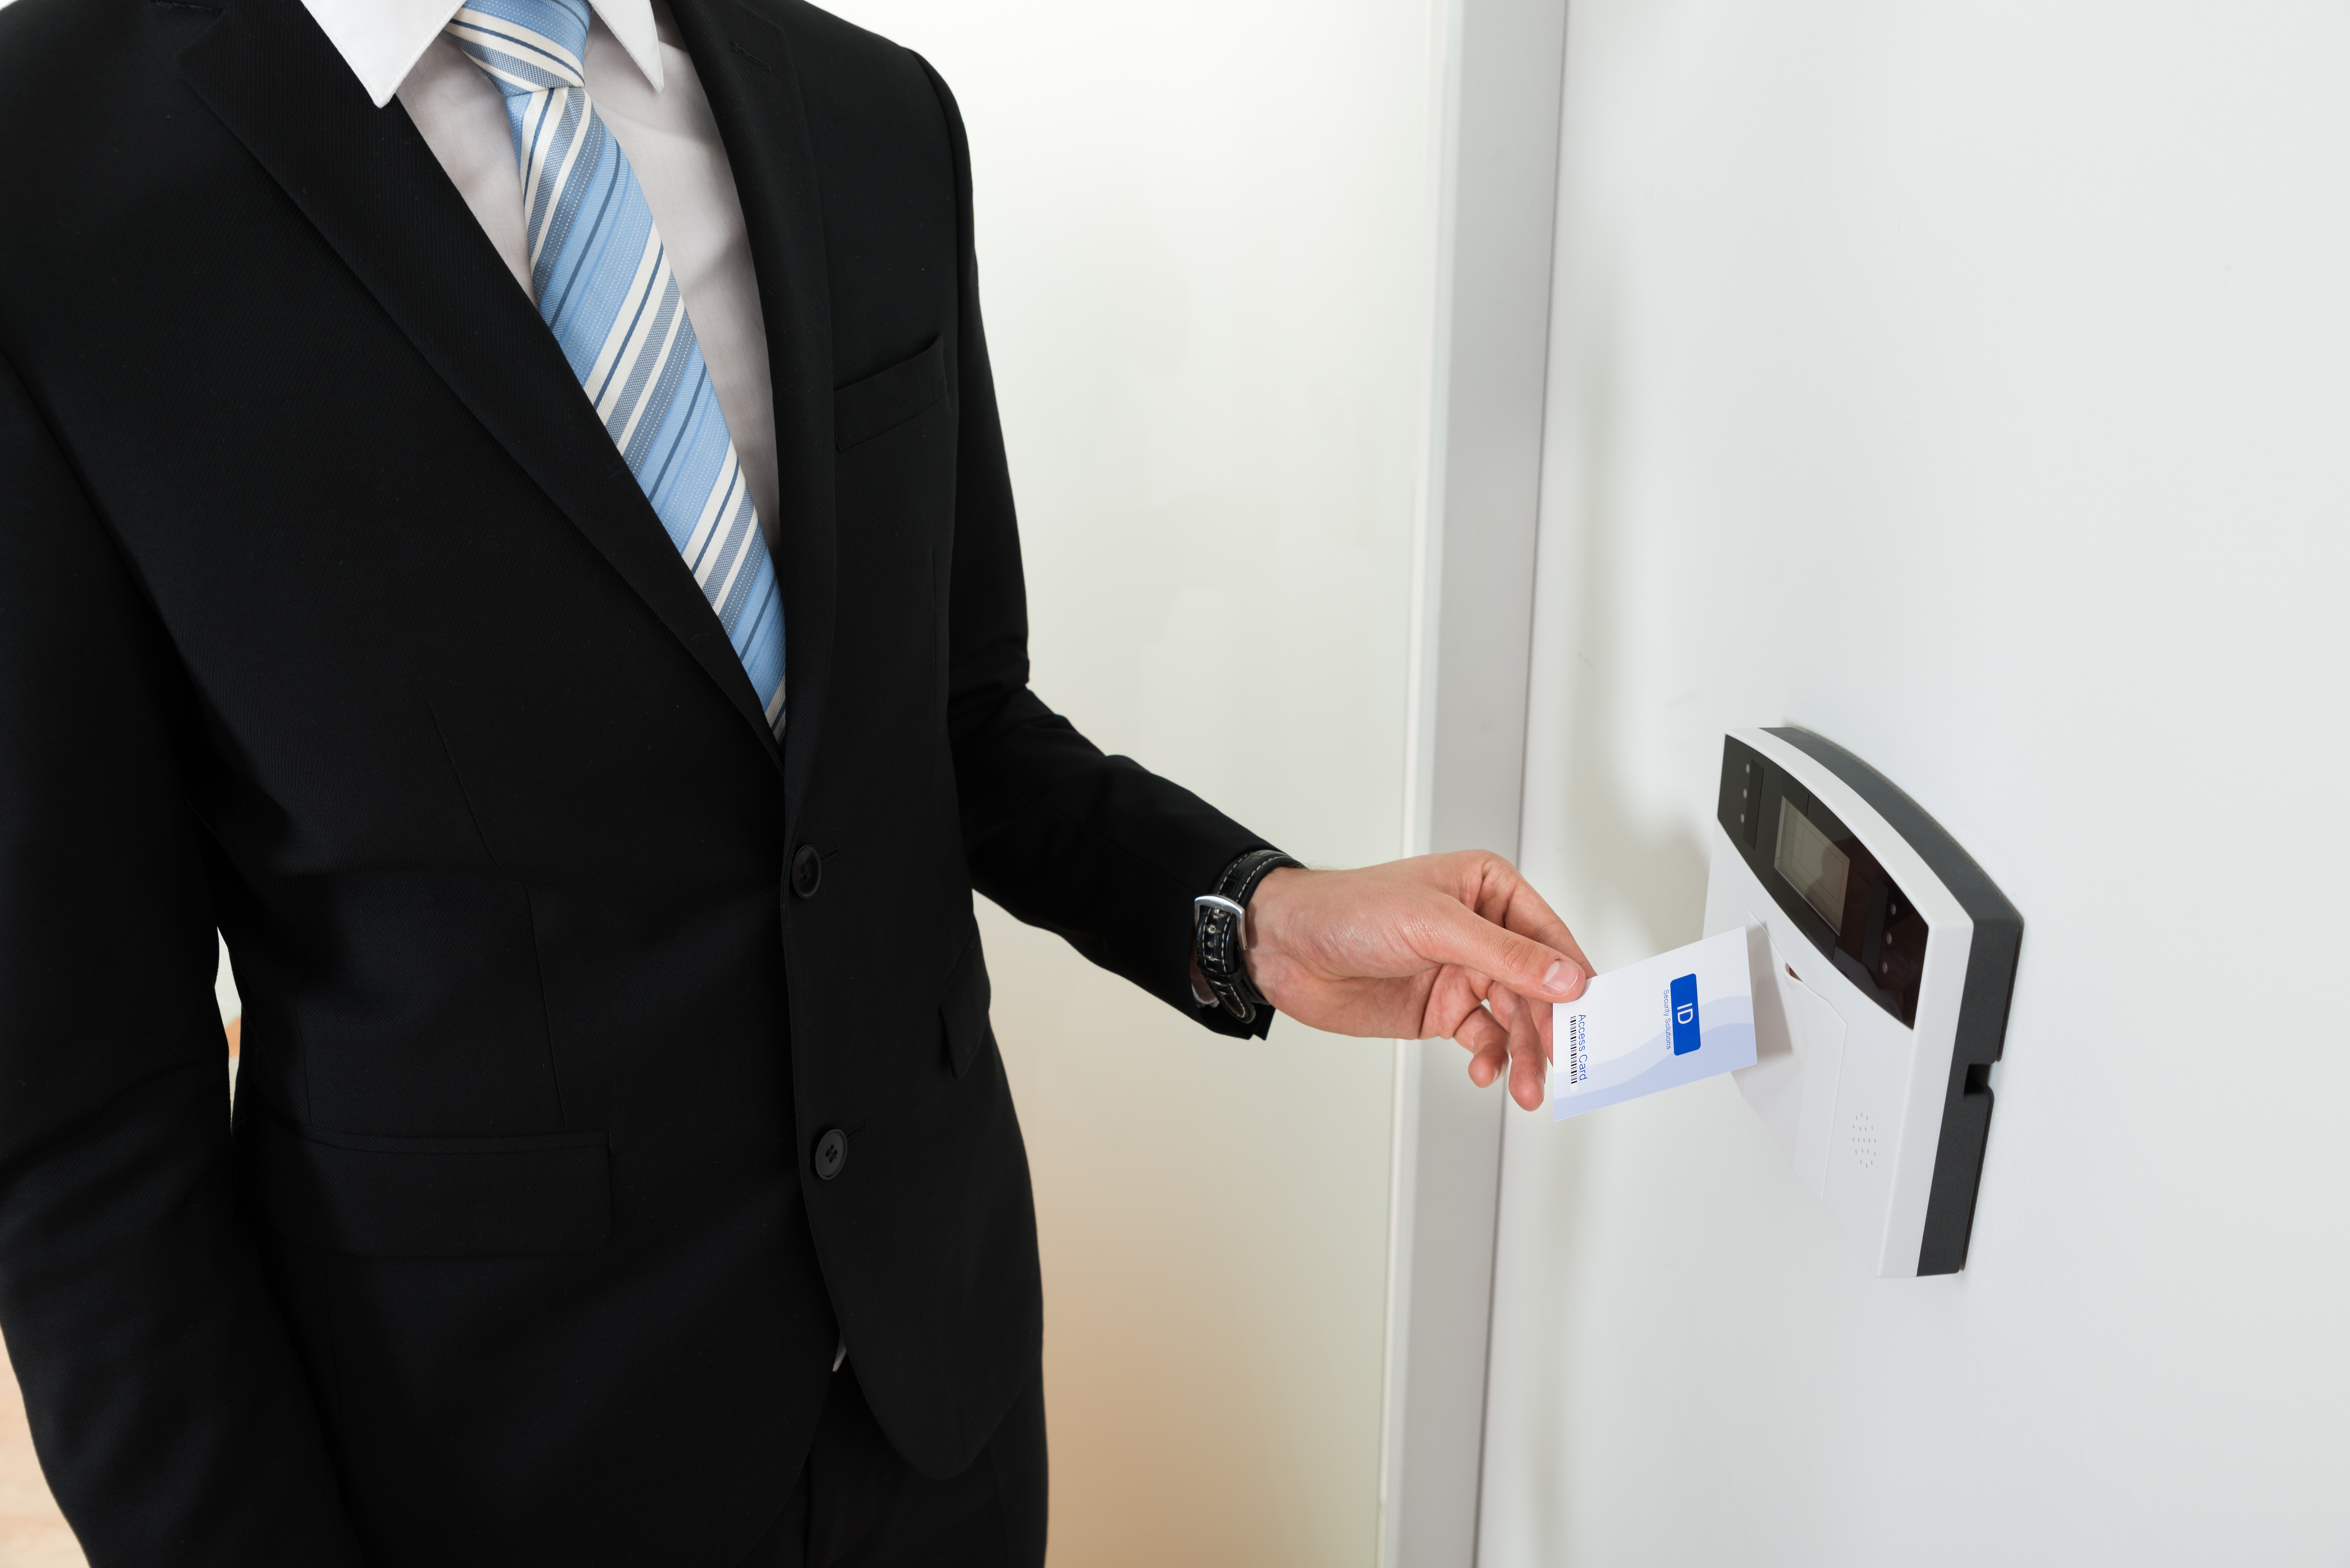 Card Access Systems